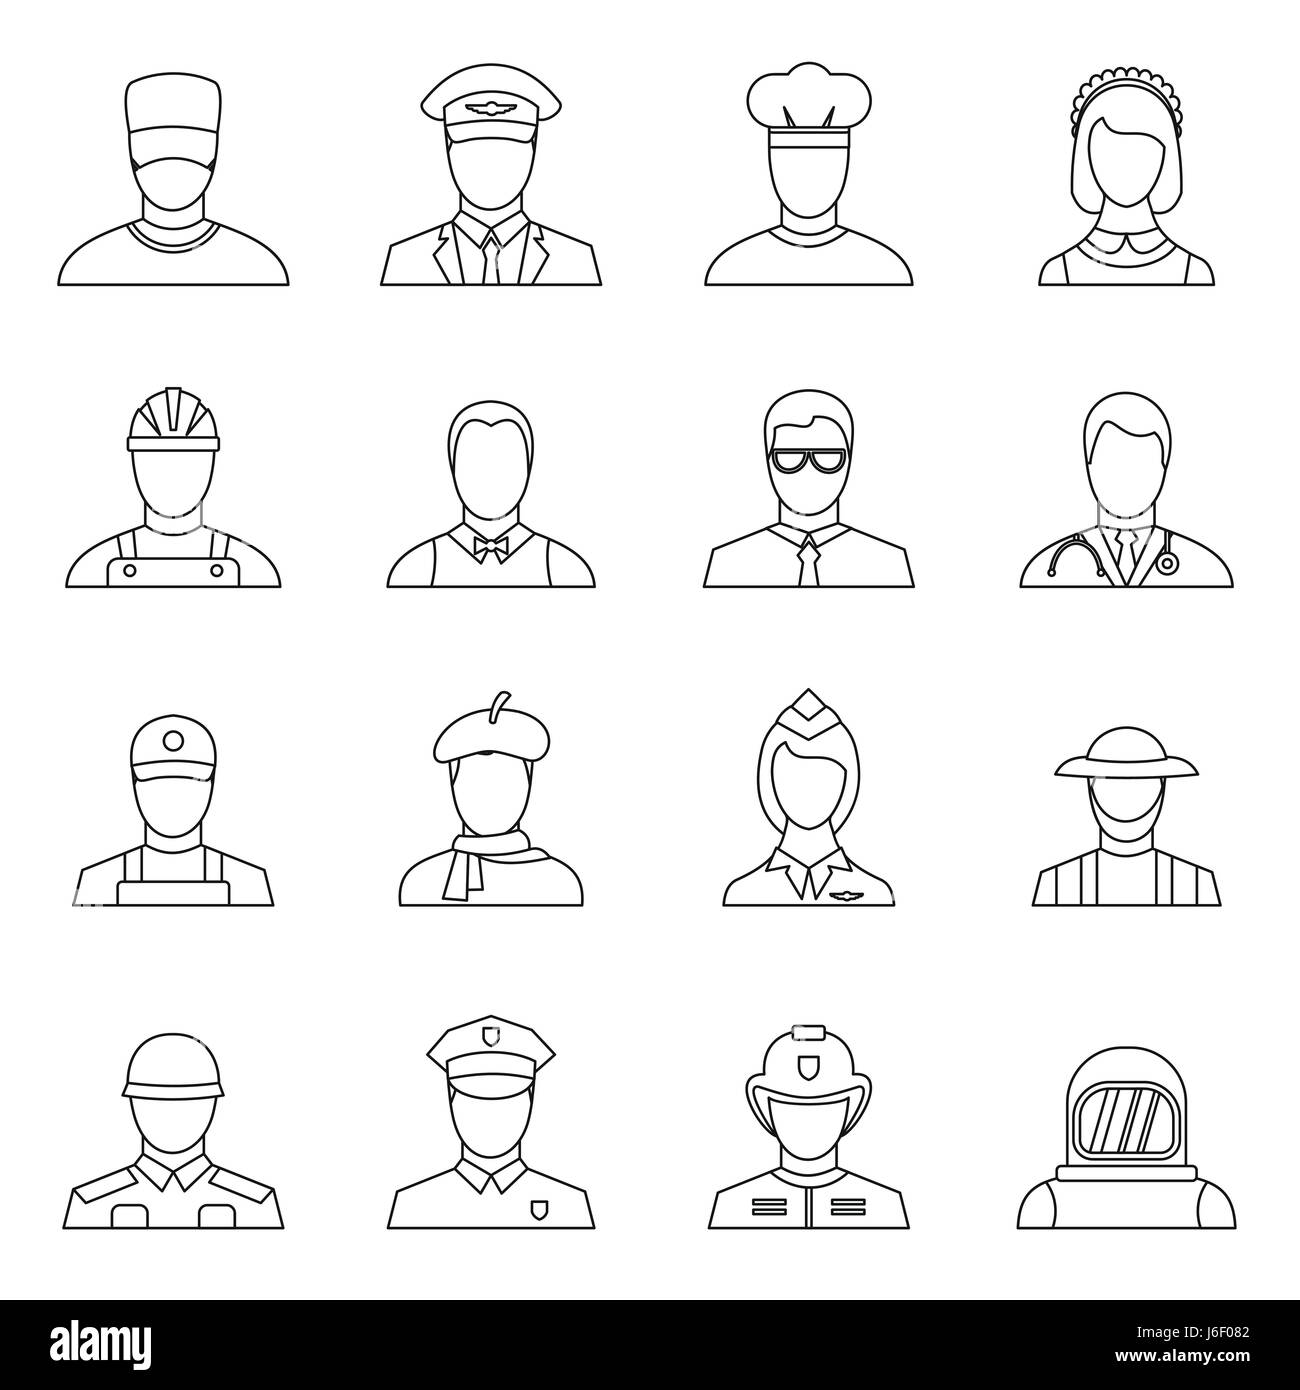 Professions icons set, outline style - Stock Image